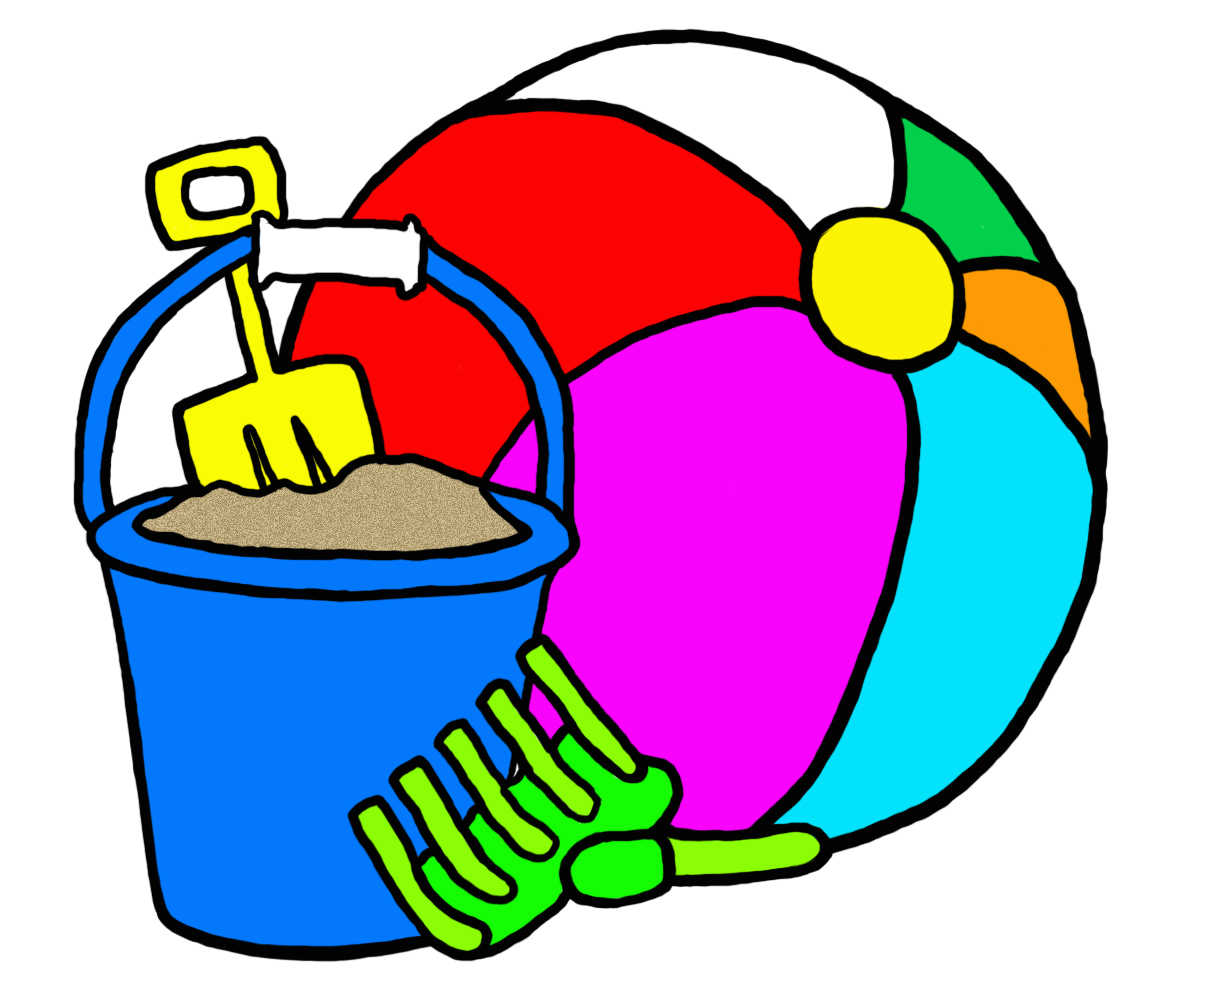 Summer Time Clip Art. Summertime cliparts